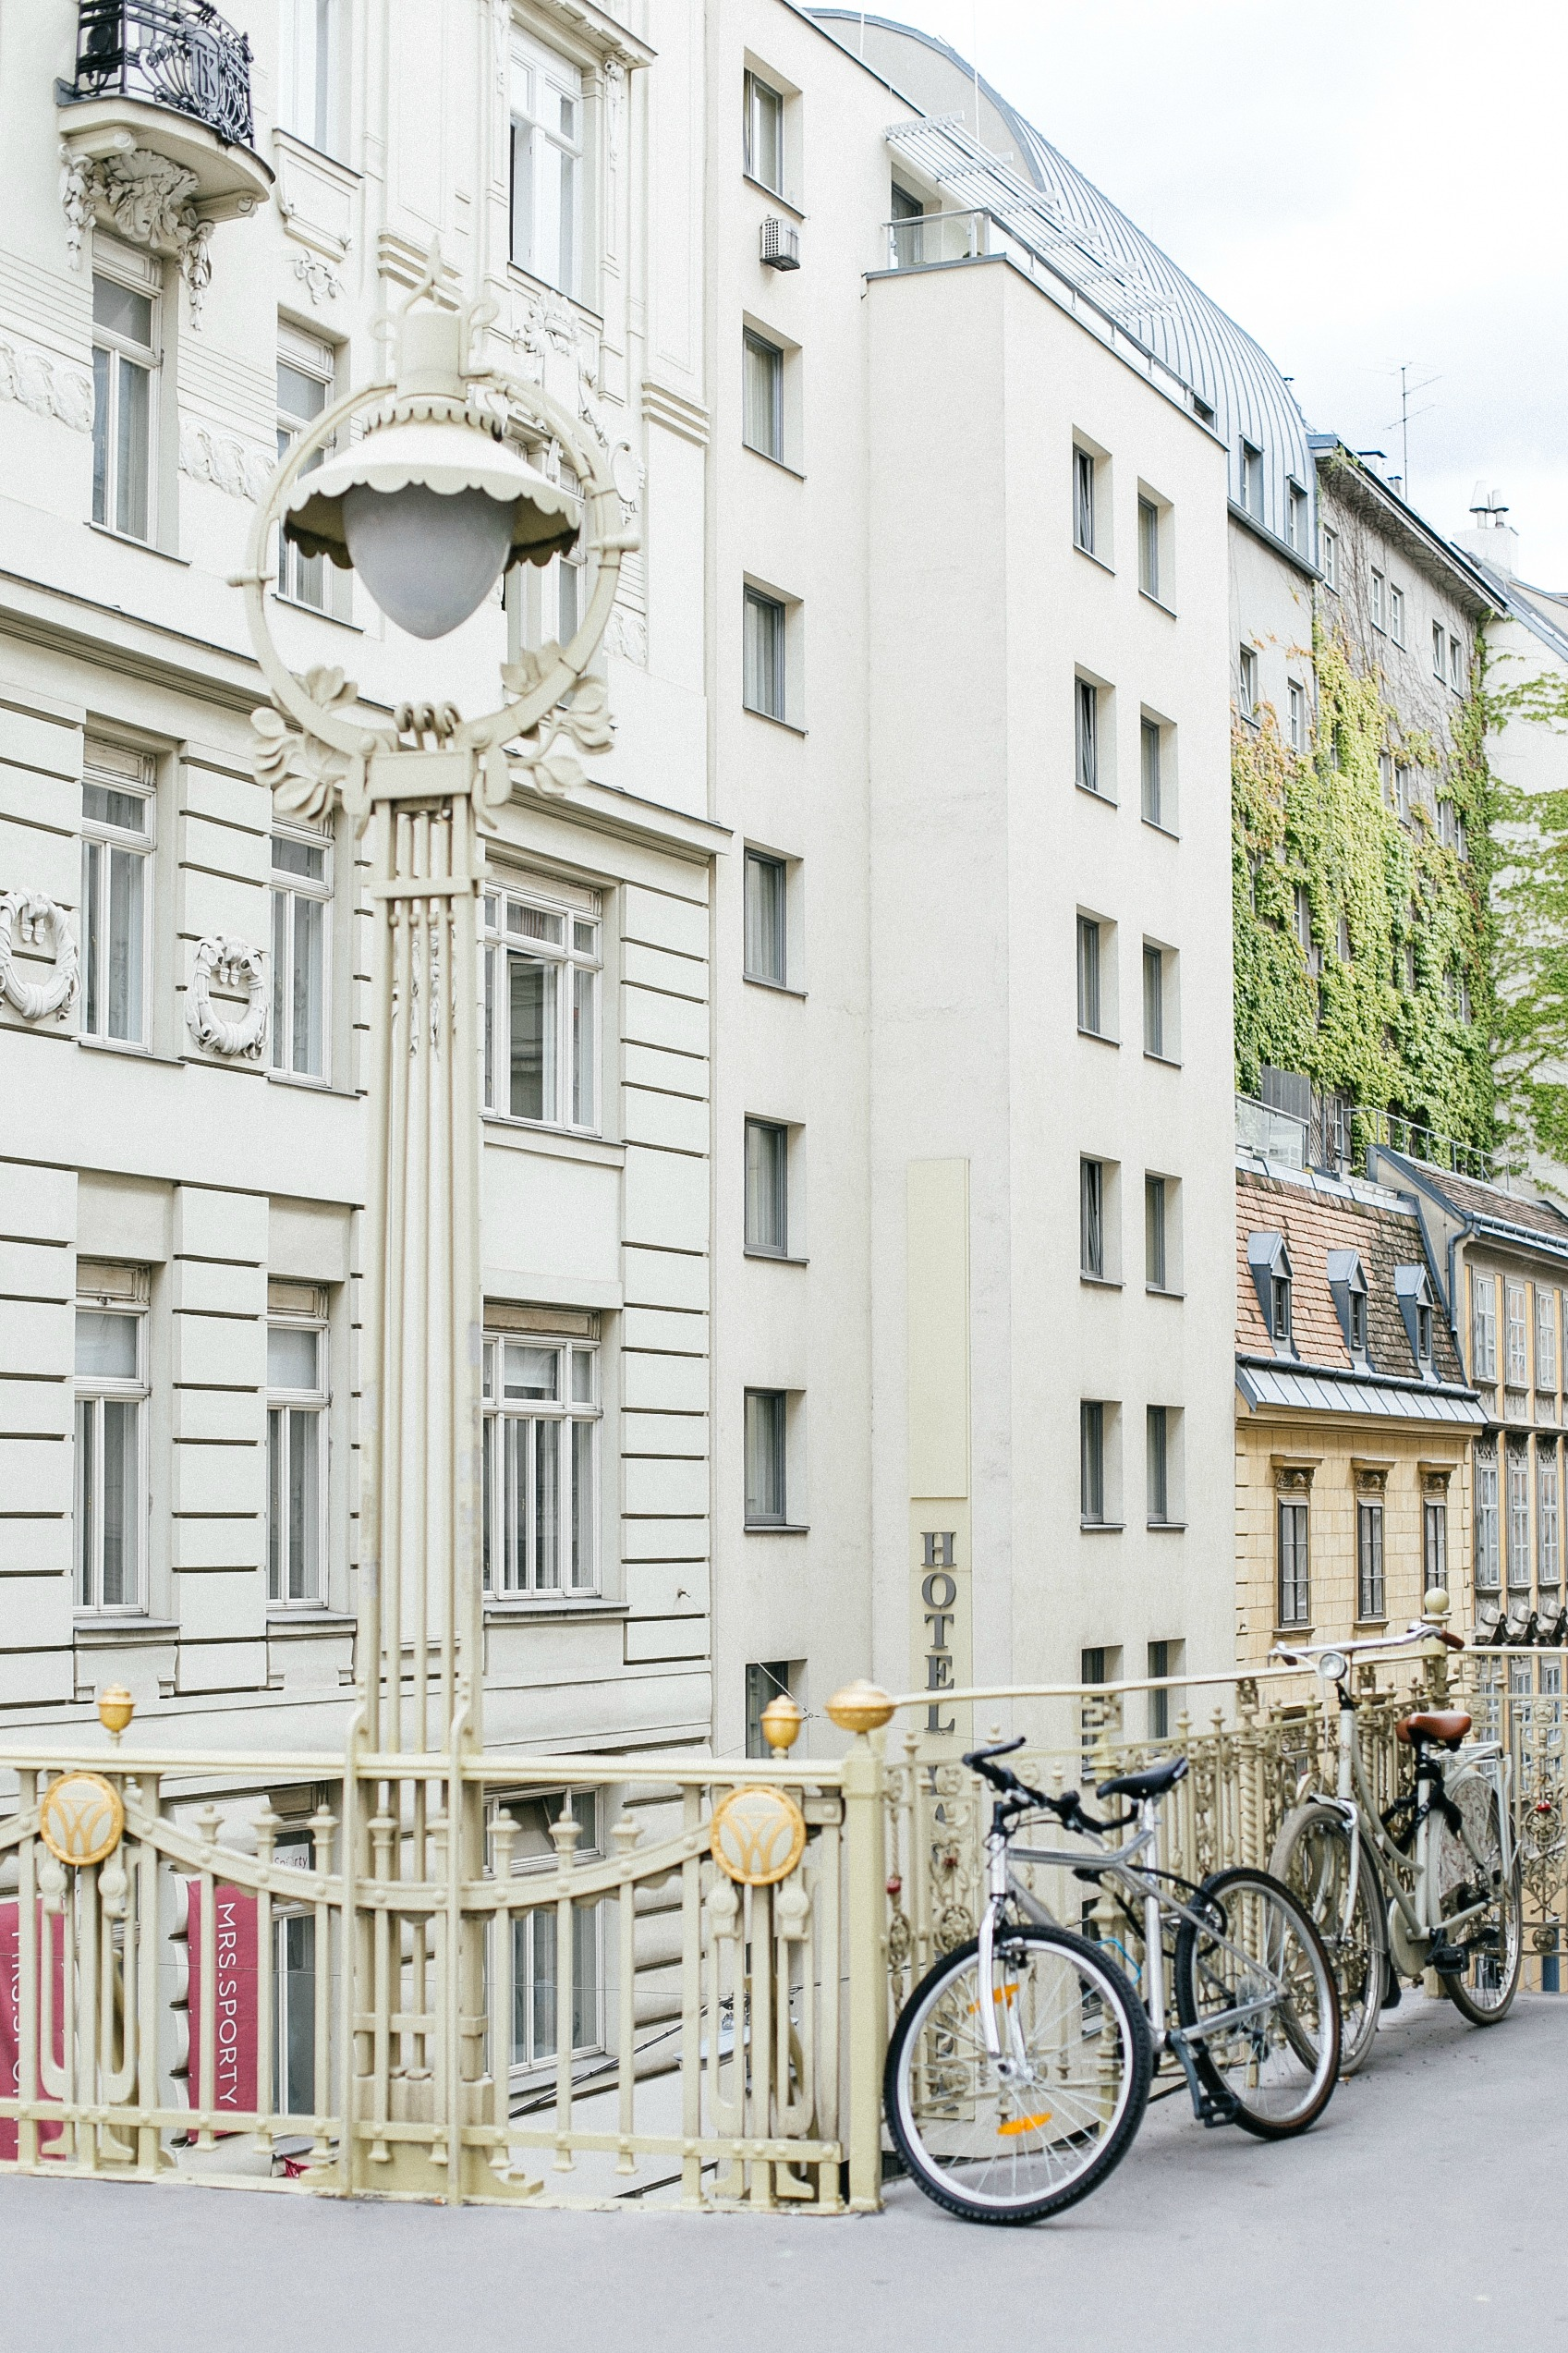 airbnb-hosting-vienna-austria-appartments-for-rent-disicouture-60